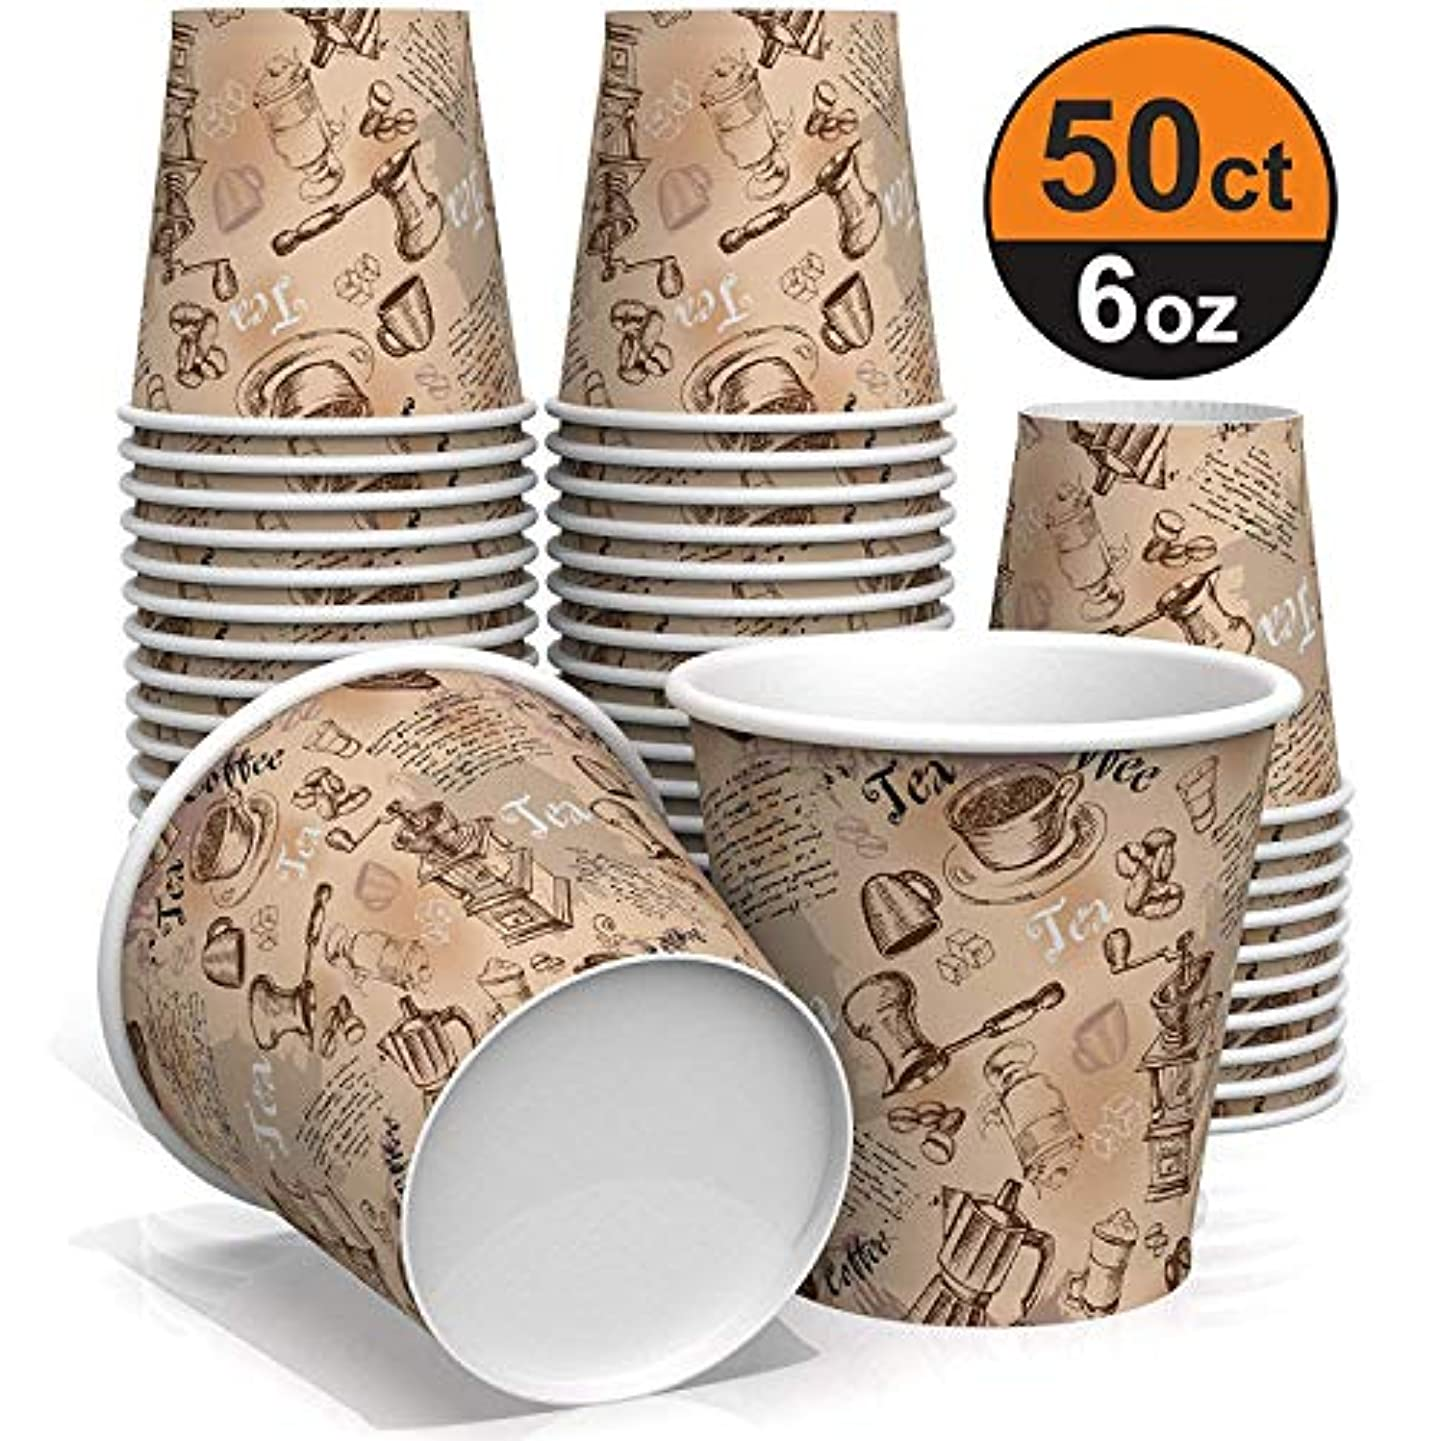 6 oz paper cups for coffee and tea - decorated paper cups